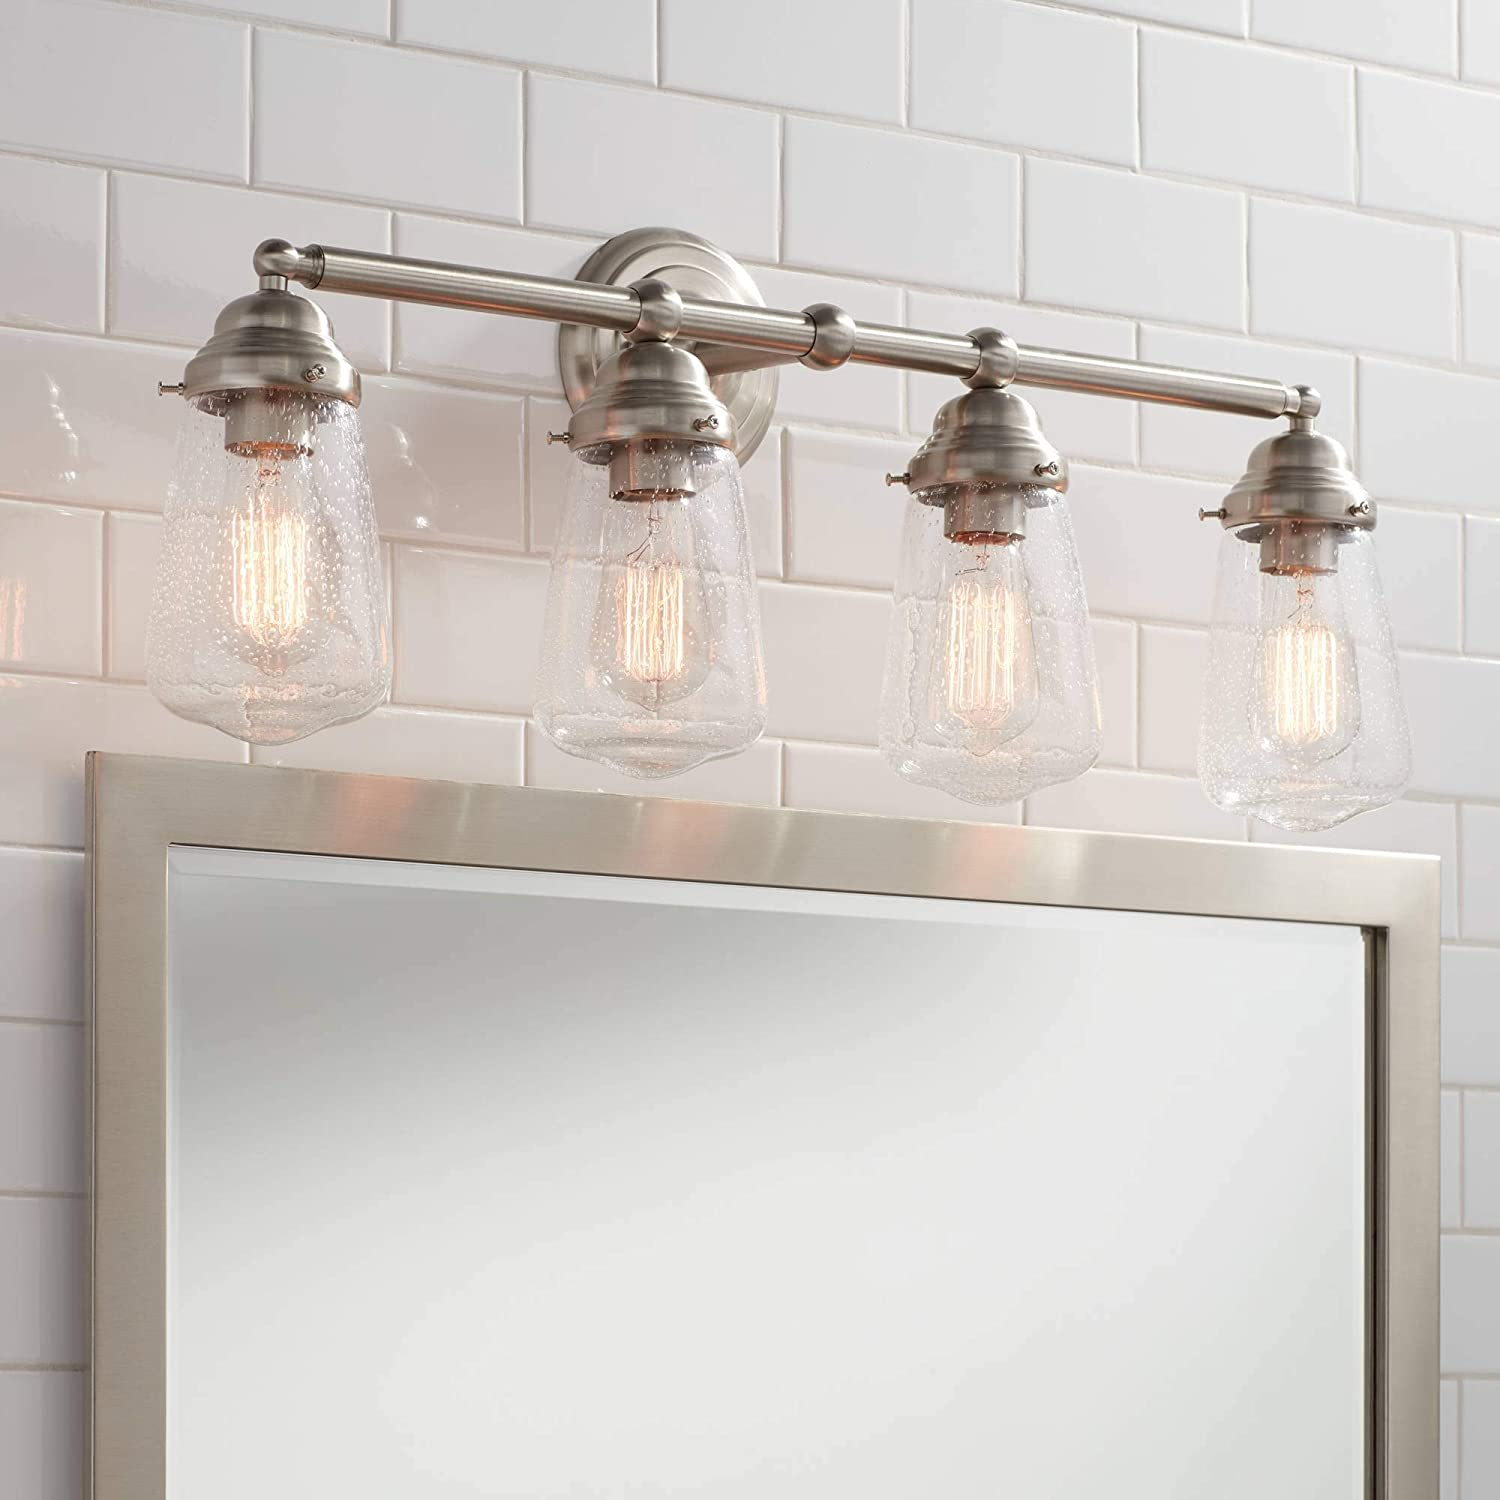 Cairon Vintage Farmhouse Industrial Wall Mount Light Brushed Nickel Silver Hardwired 28